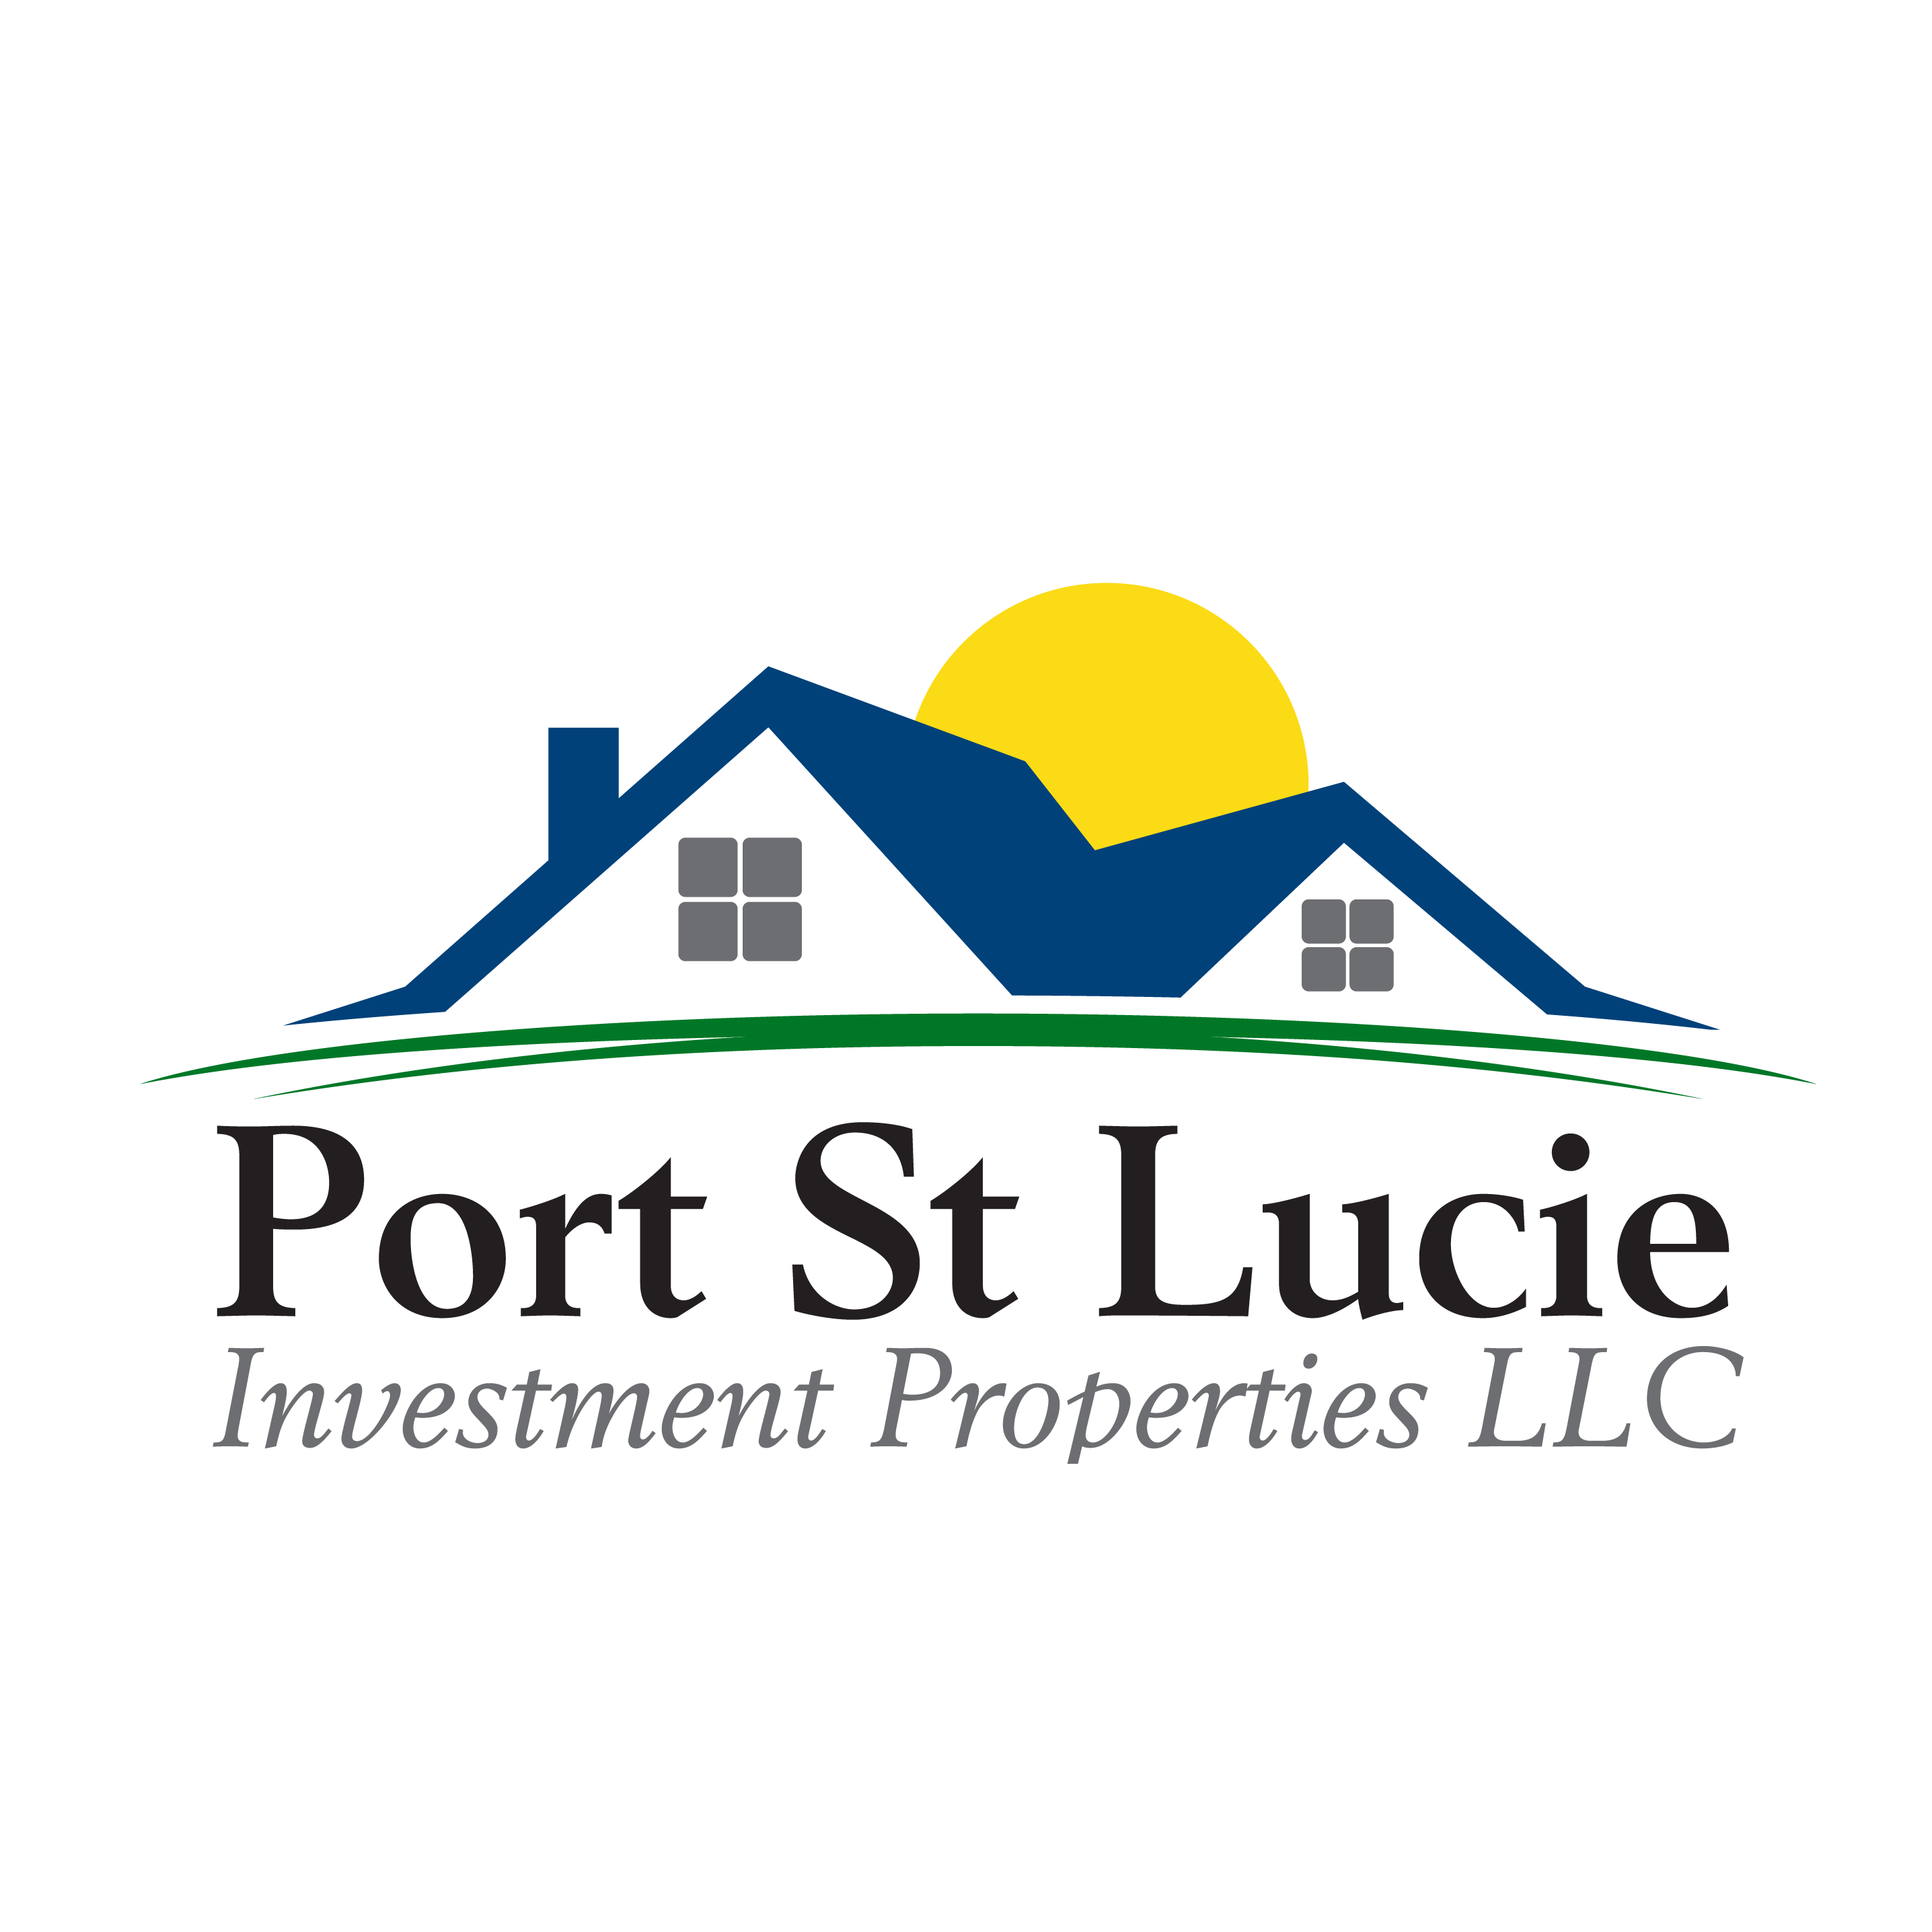 Invest Local Colorado Llc: Port St Lucie Investment Properties LLC, Fort Pierce